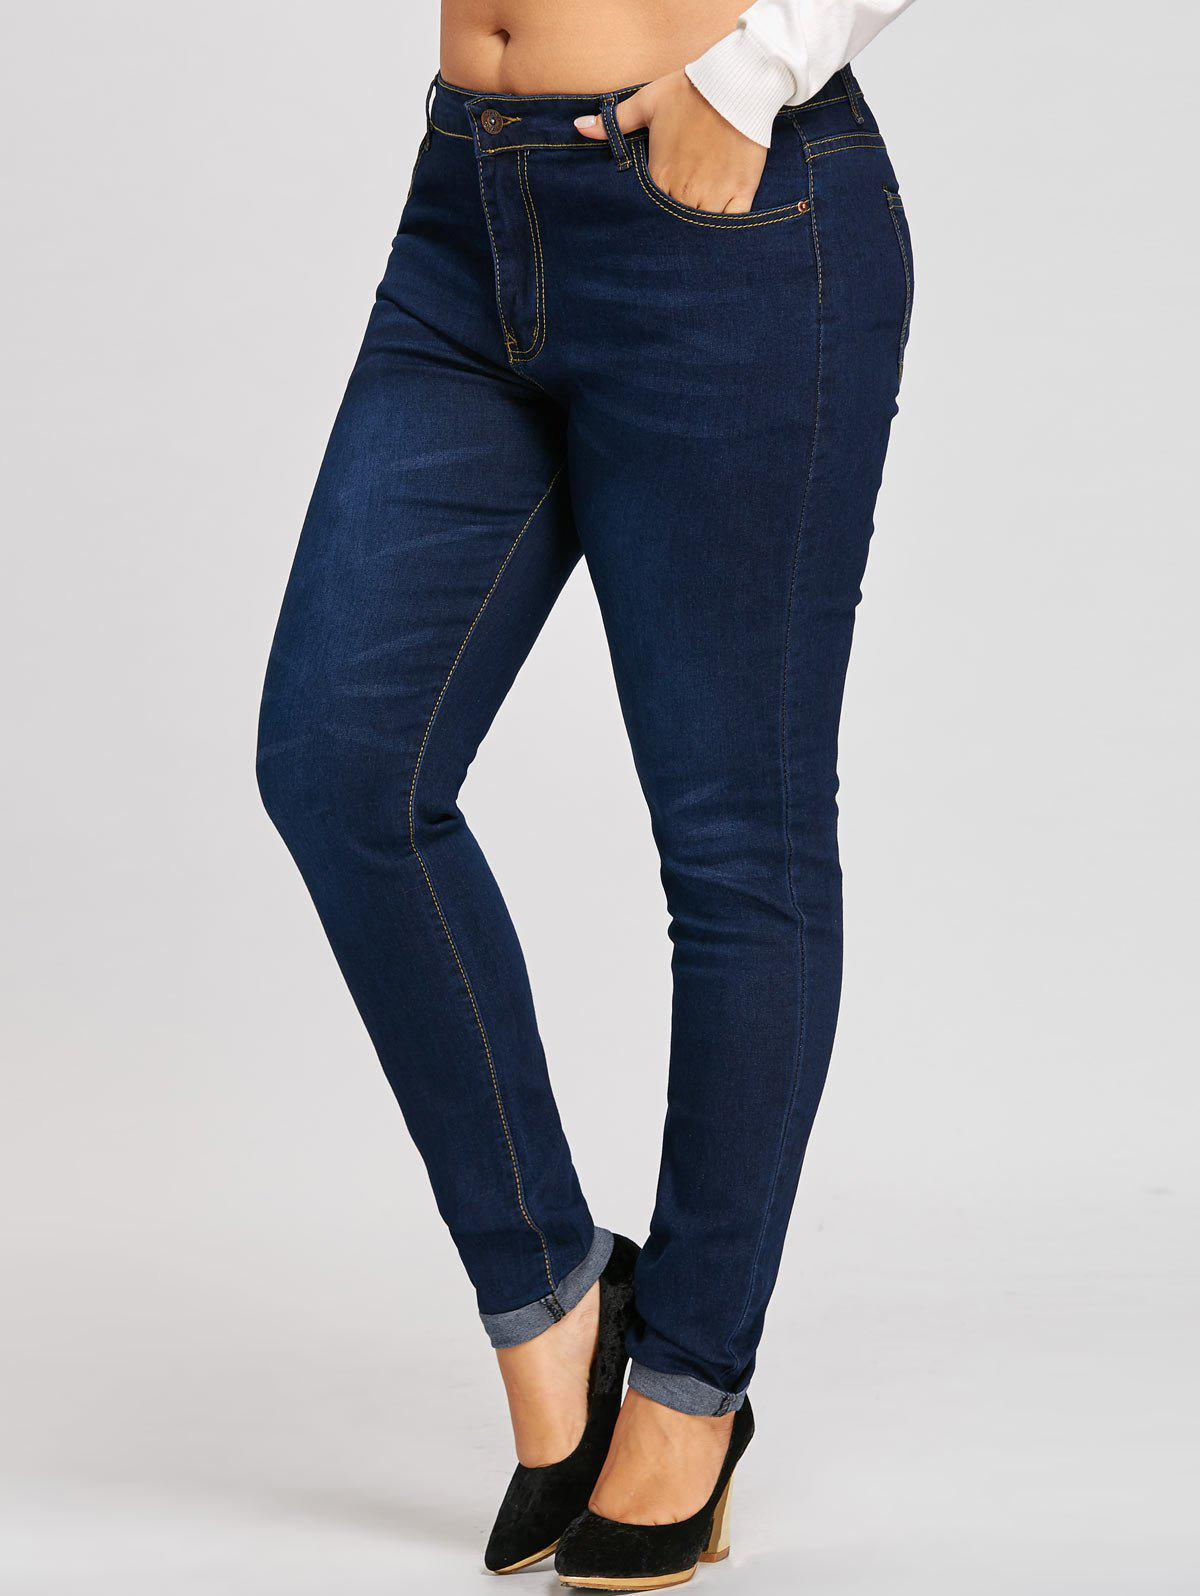 Plus Size Ninth Midi Waist Cuffed JeansWOMEN<br><br>Size: 3XL; Color: DENIM BLUE; Style: Fashion; Length: Ninth; Material: Jeans; Fabric Type: Denim; Fit Type: Skinny; Waist Type: Mid; Closure Type: Zipper Fly; Pattern Type: Solid; Embellishment: Pockets; Pant Style: Pencil Pants; Weight: 0.5900kg; Package Contents: 1 x Jeans;